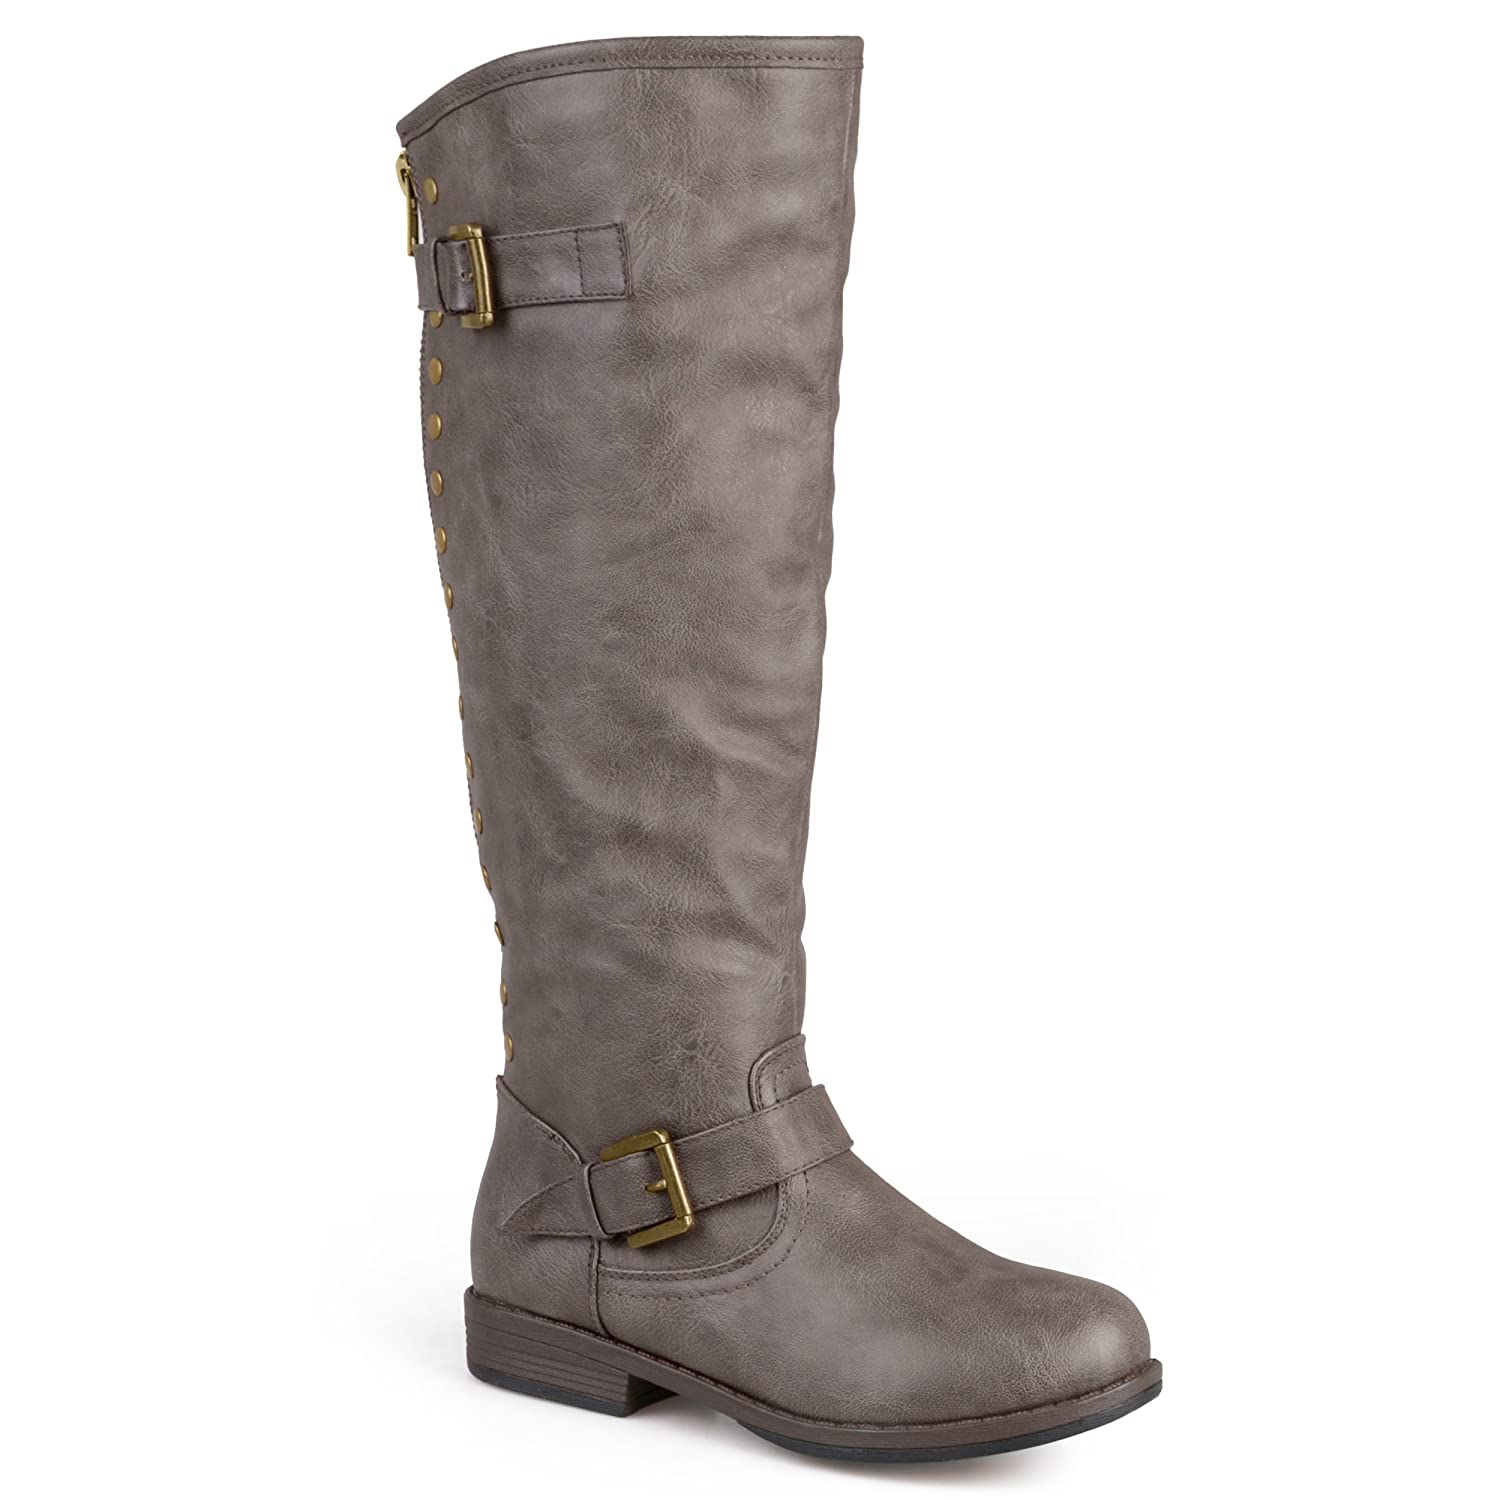 Journee Collection Womens Regular Sized, Wide-Calf and Extra Wide-Calf Studded Knee-High Riding Boot B00FBZXX26 9 W US|Taupe